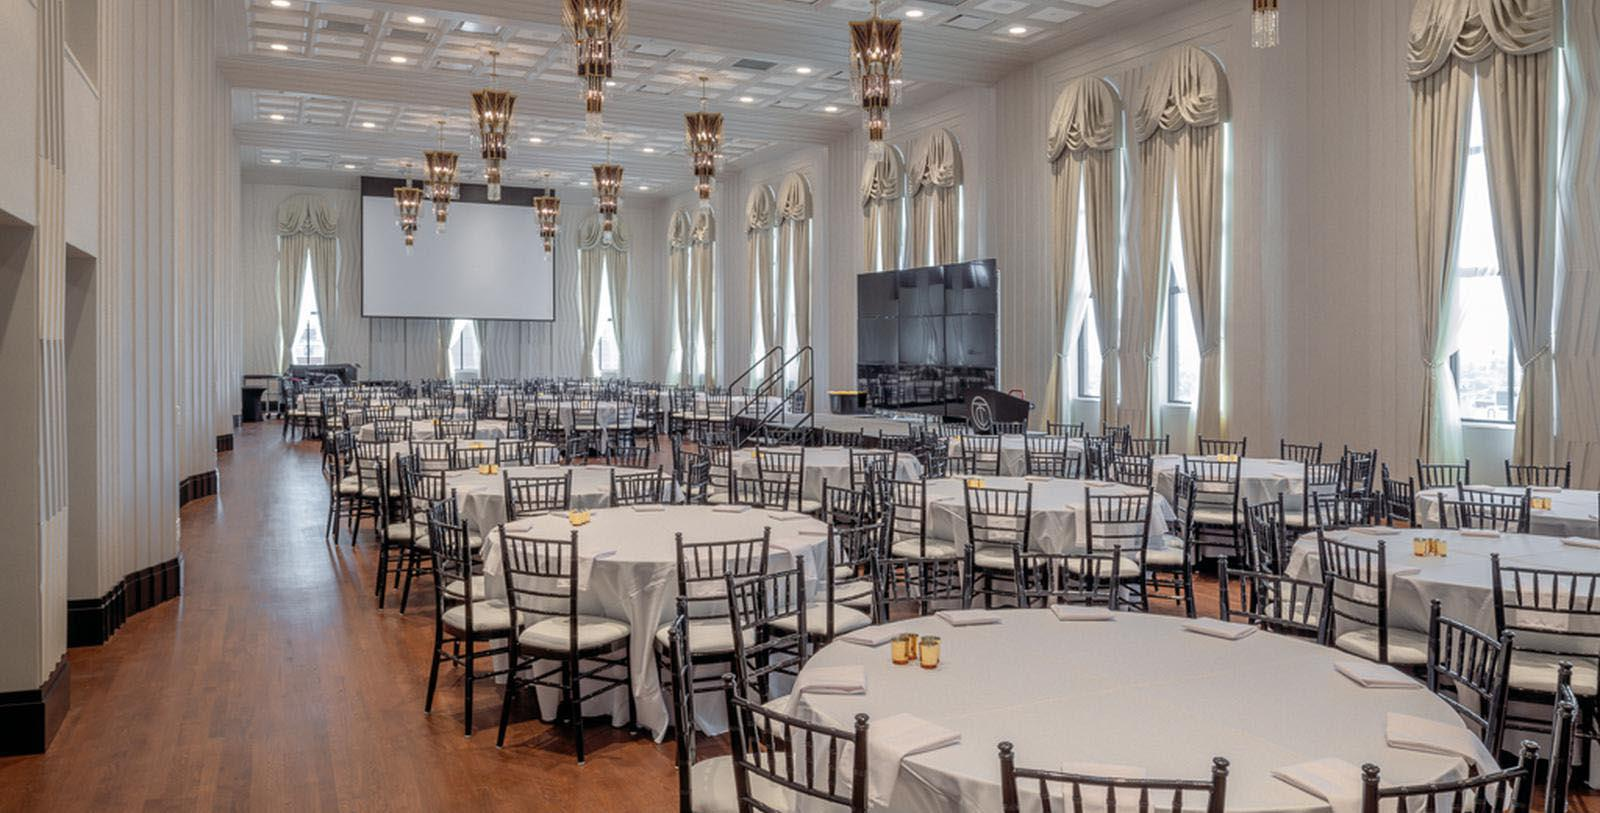 Image of ballroom set up for wedding reception Tulsa Club Hotel, Curio Collection by Hilton, 1927, Member of Historic Hotels of America, in Tulsa, Oklahoma, Experience